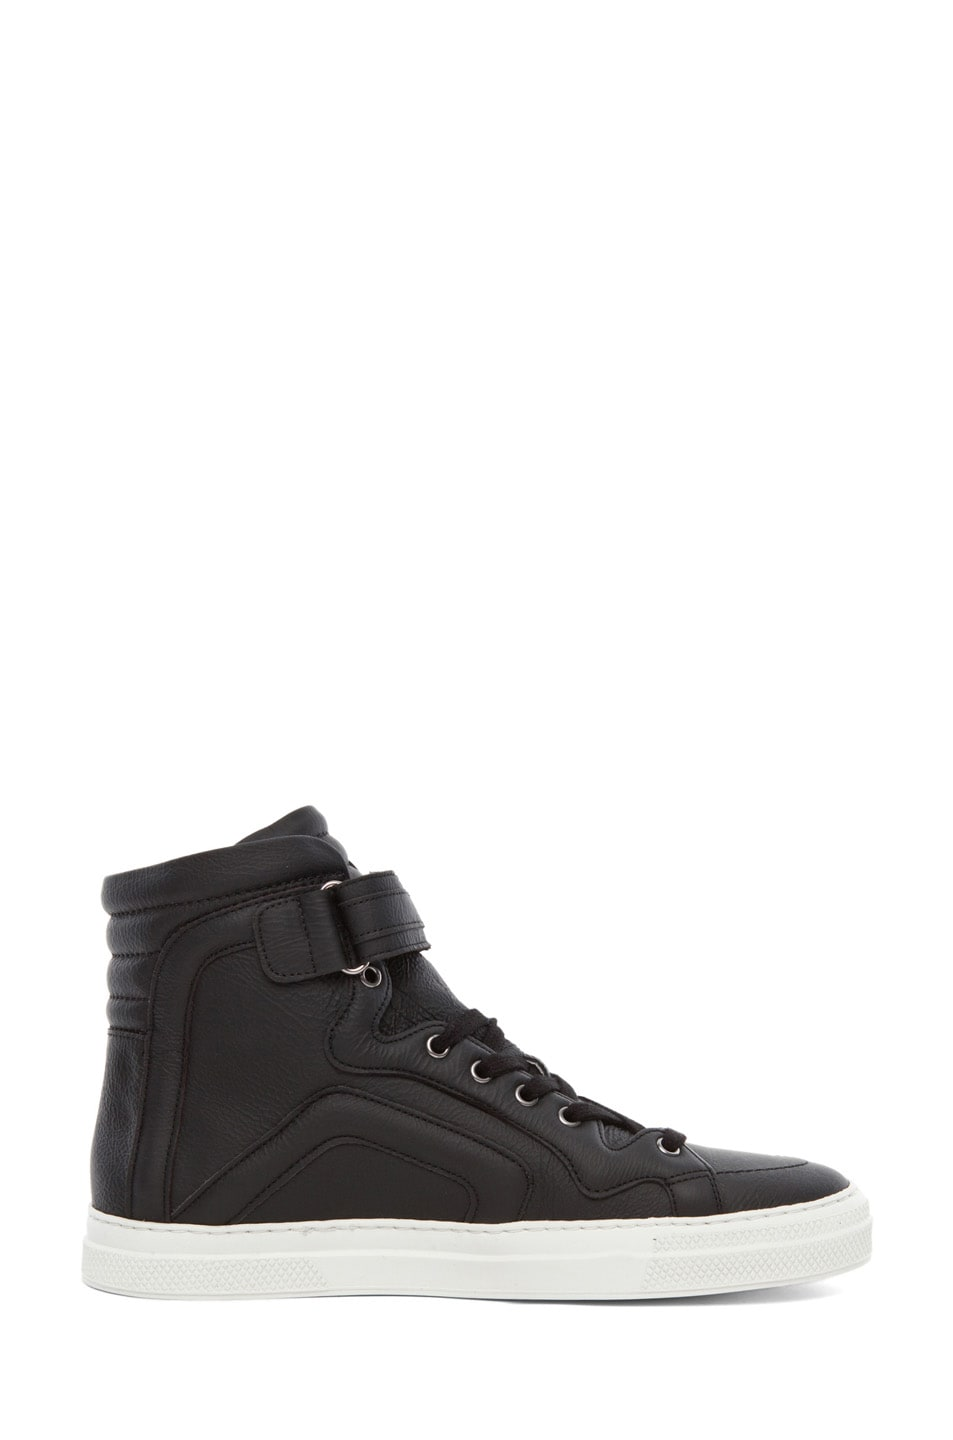 Image 5 of Pierre Hardy Paper Calf Hi Top Sneaker in Black